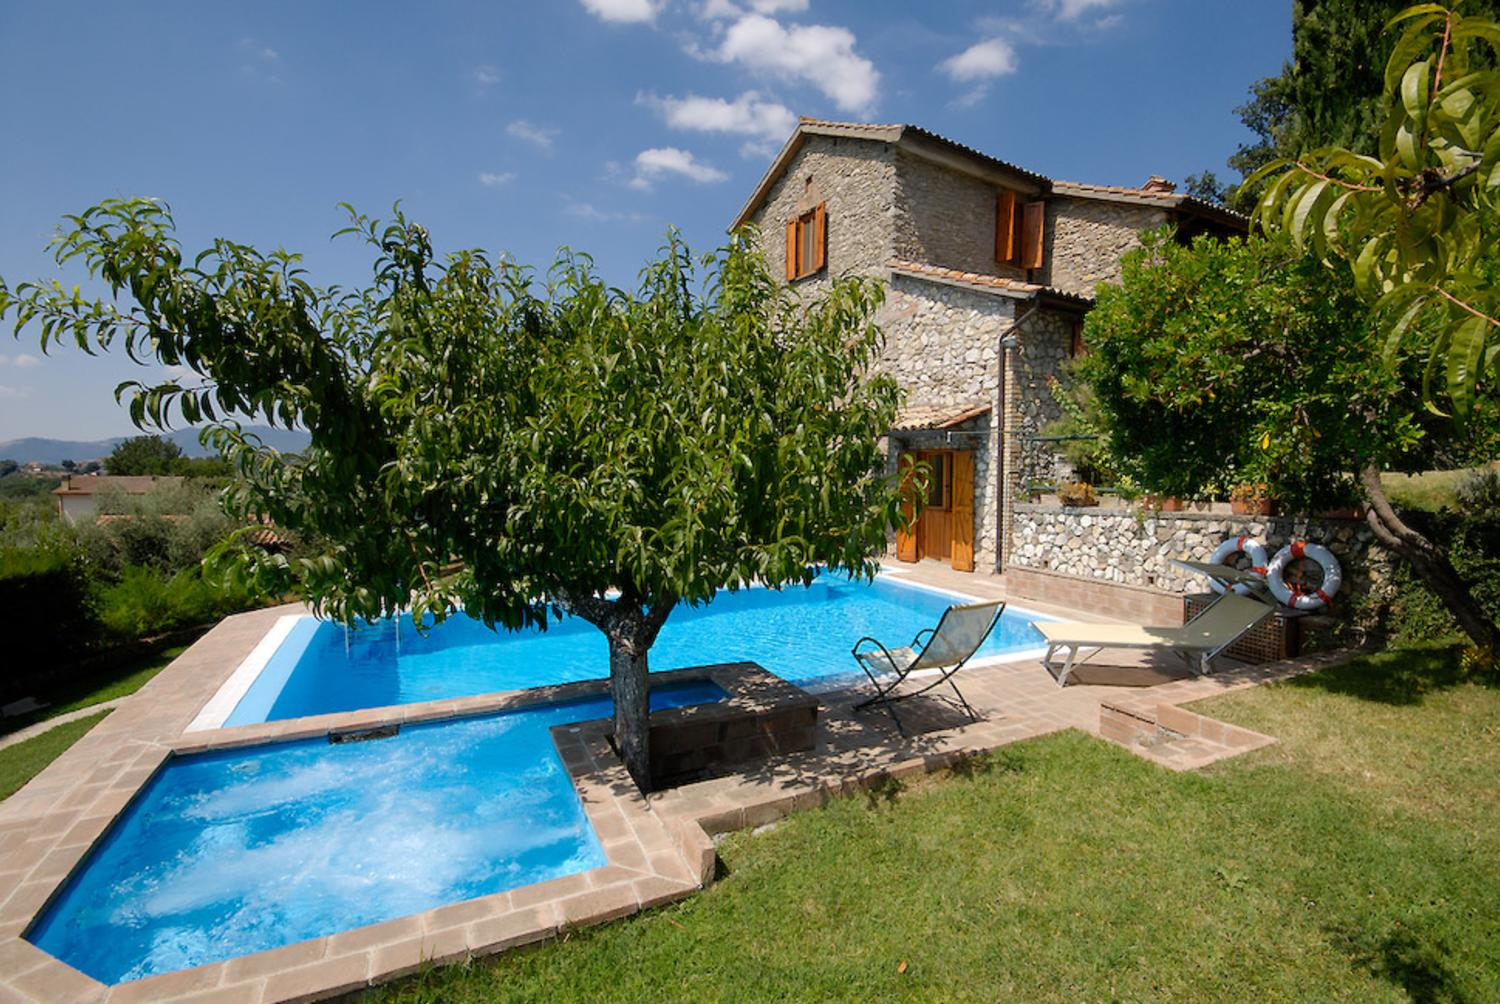 Outdoor pool and jacuzzi, Casa Alessia, Lazio, Selci in Sabina.